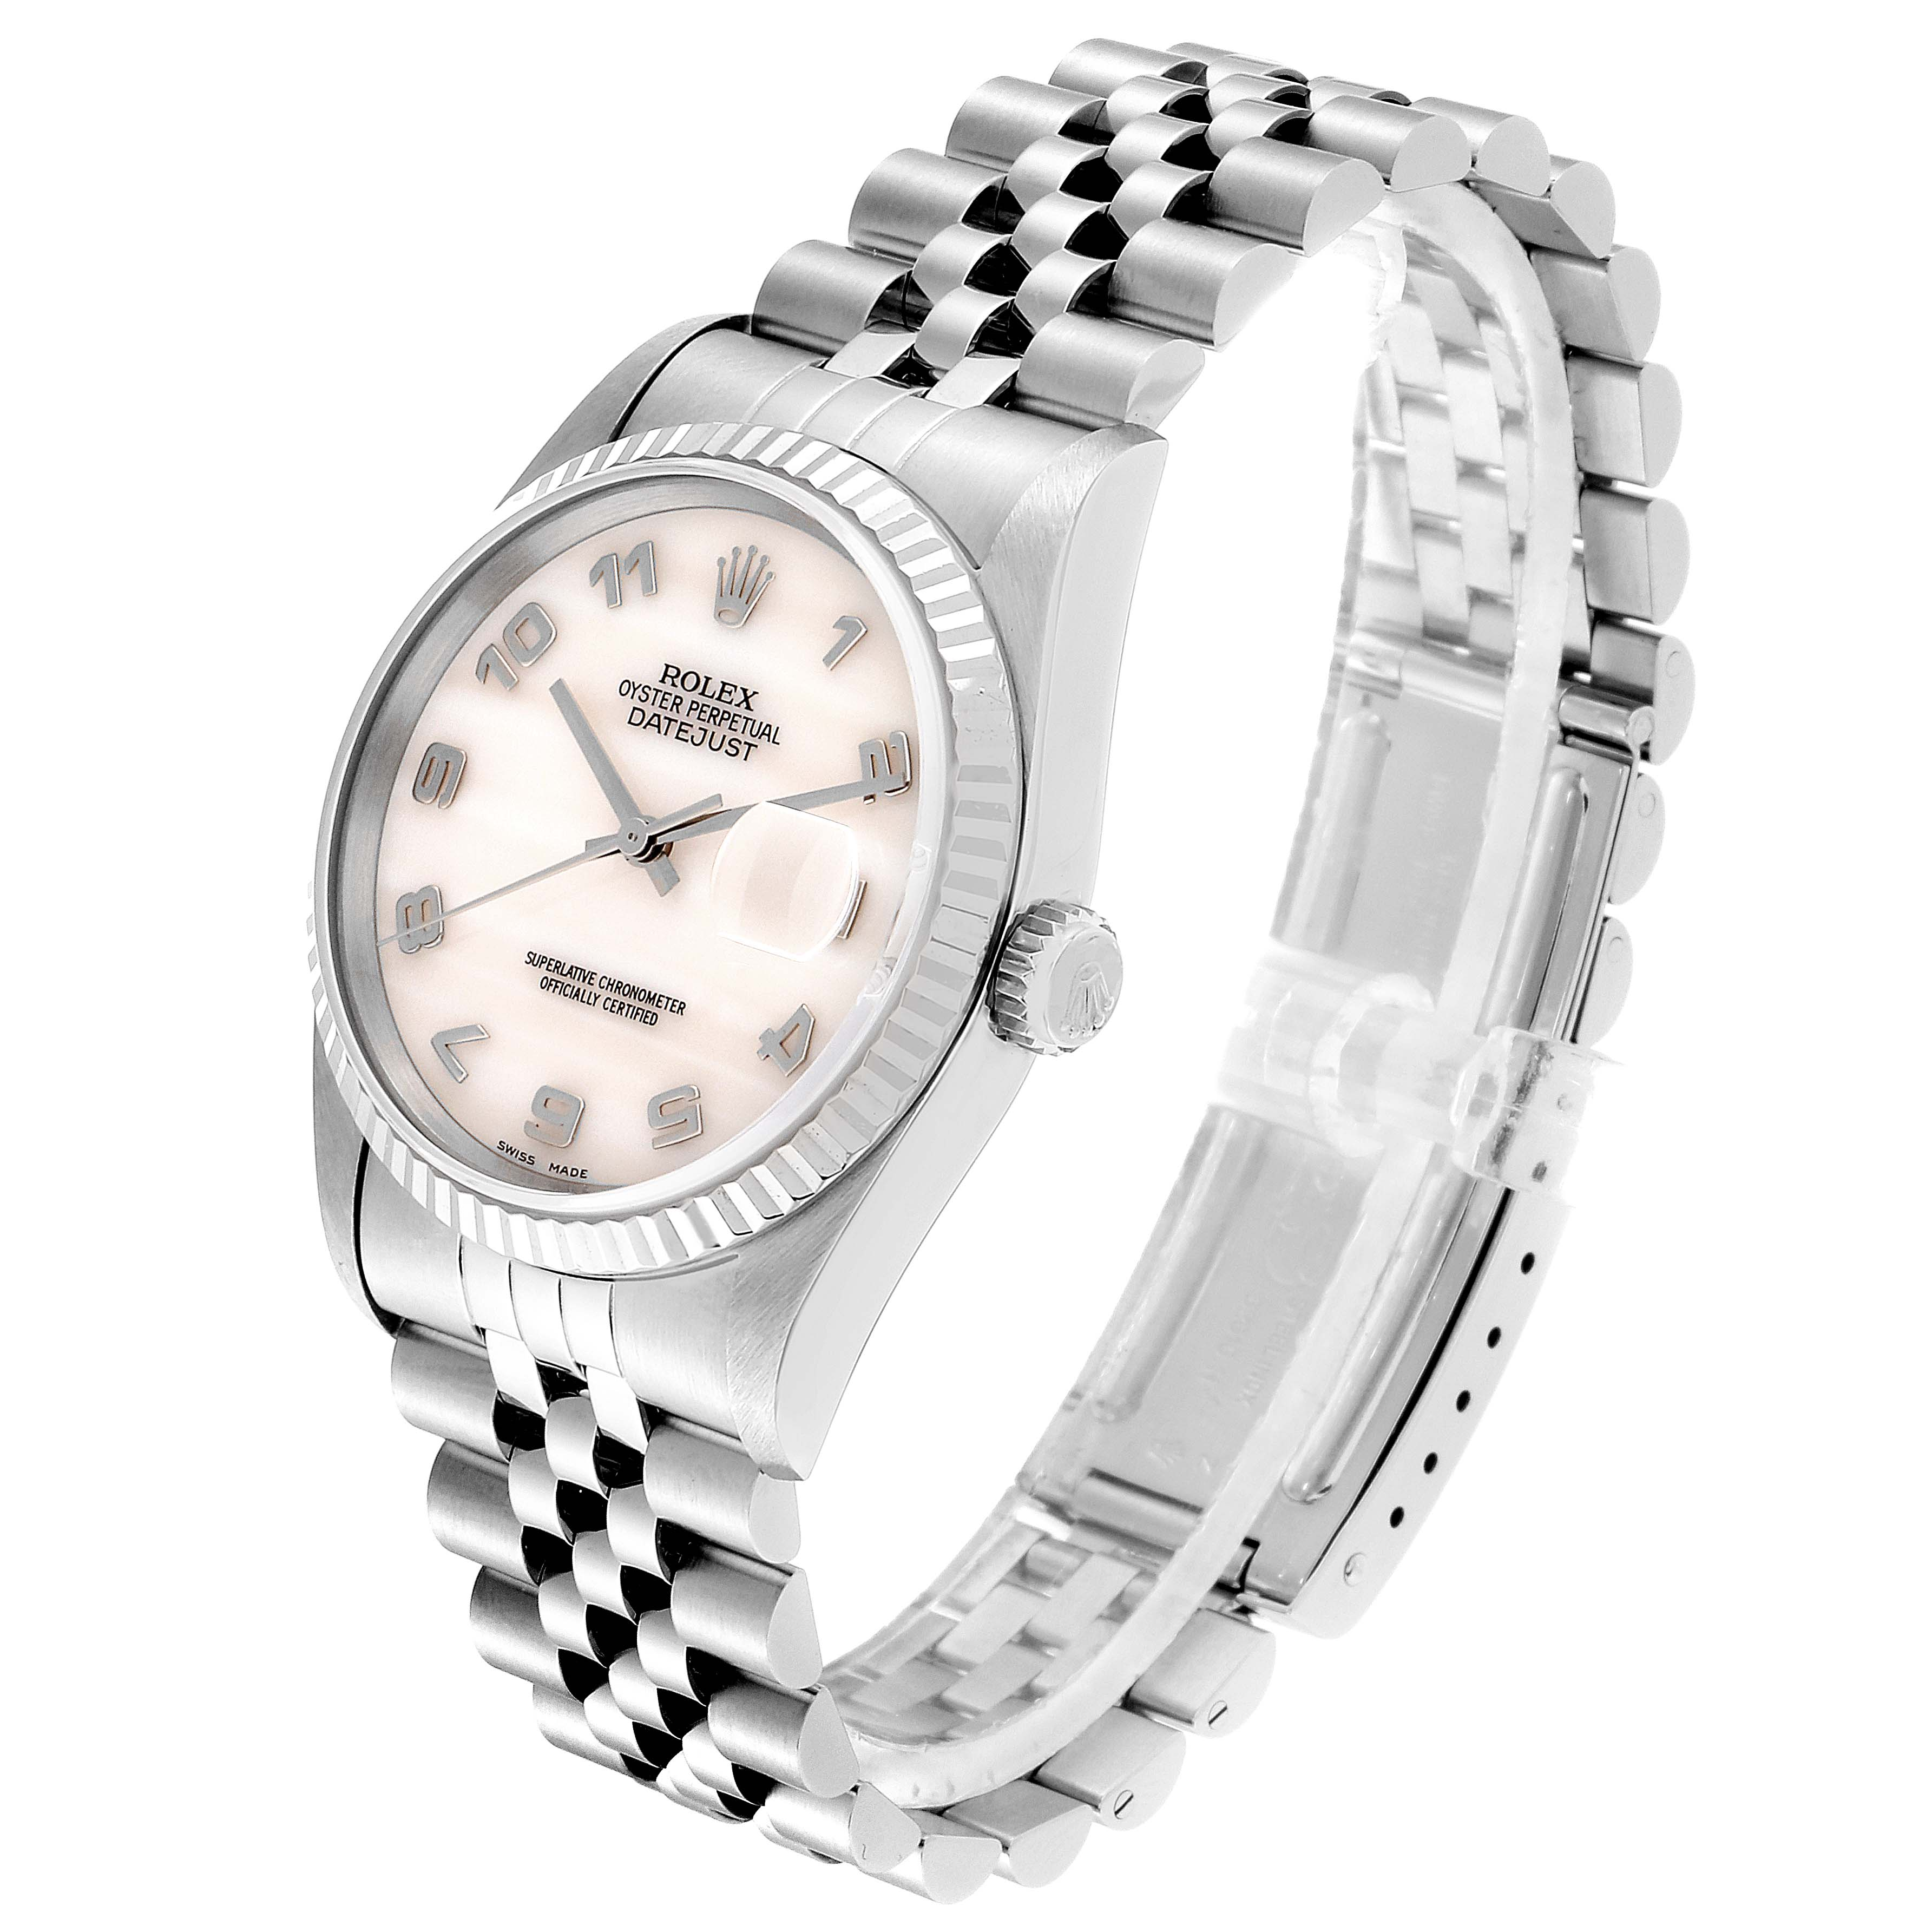 Rolex Datejust Steel White Gold Mother of Pearl Dial Mens Watch 16234 SwissWatchExpo